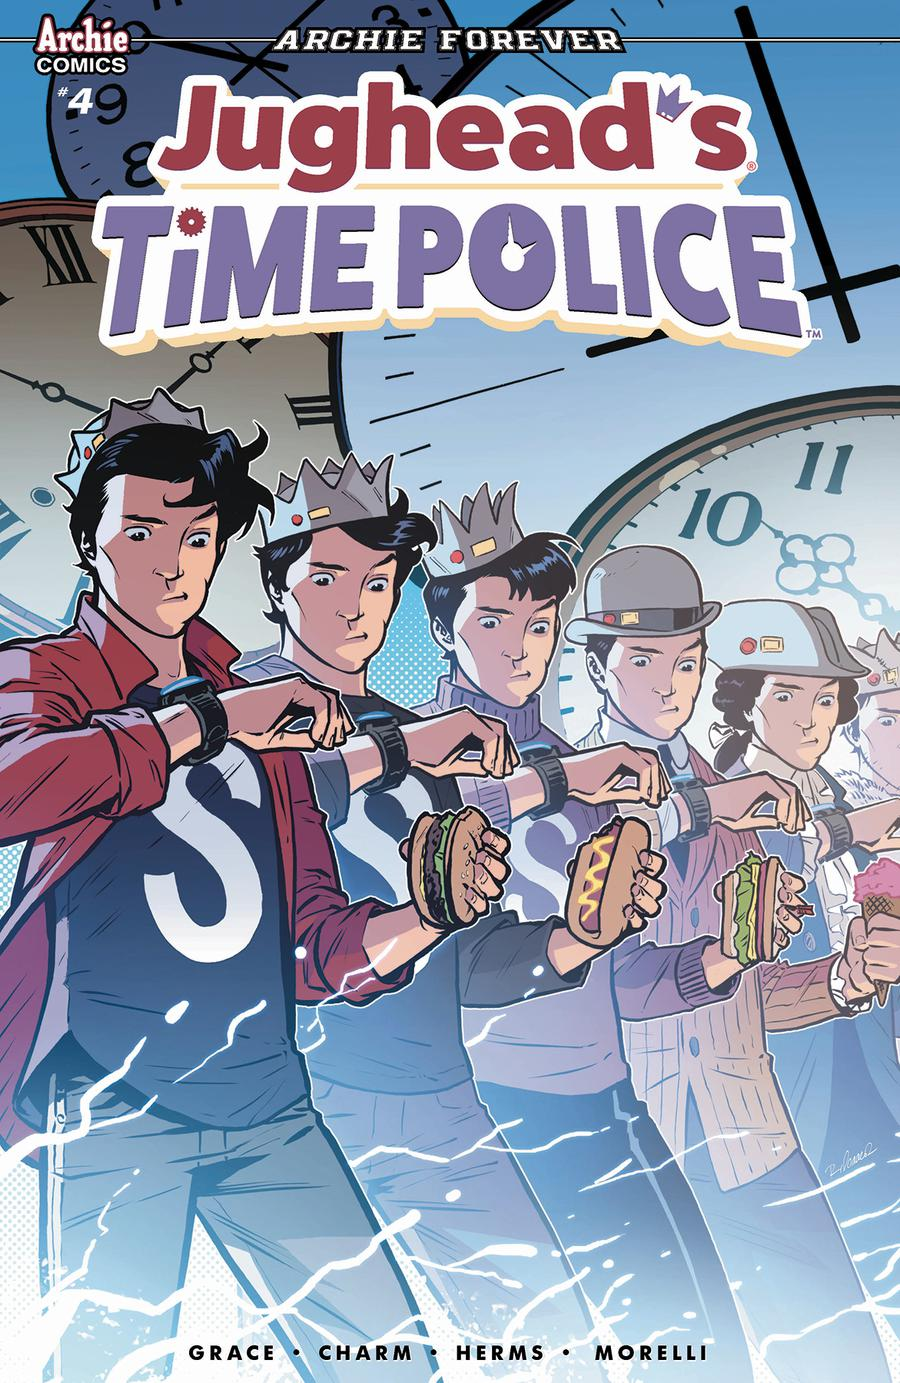 Jugheads Time Police Vol 2 #4 Cover B Variant Rebekah Isaacs & Matt Herms Cover